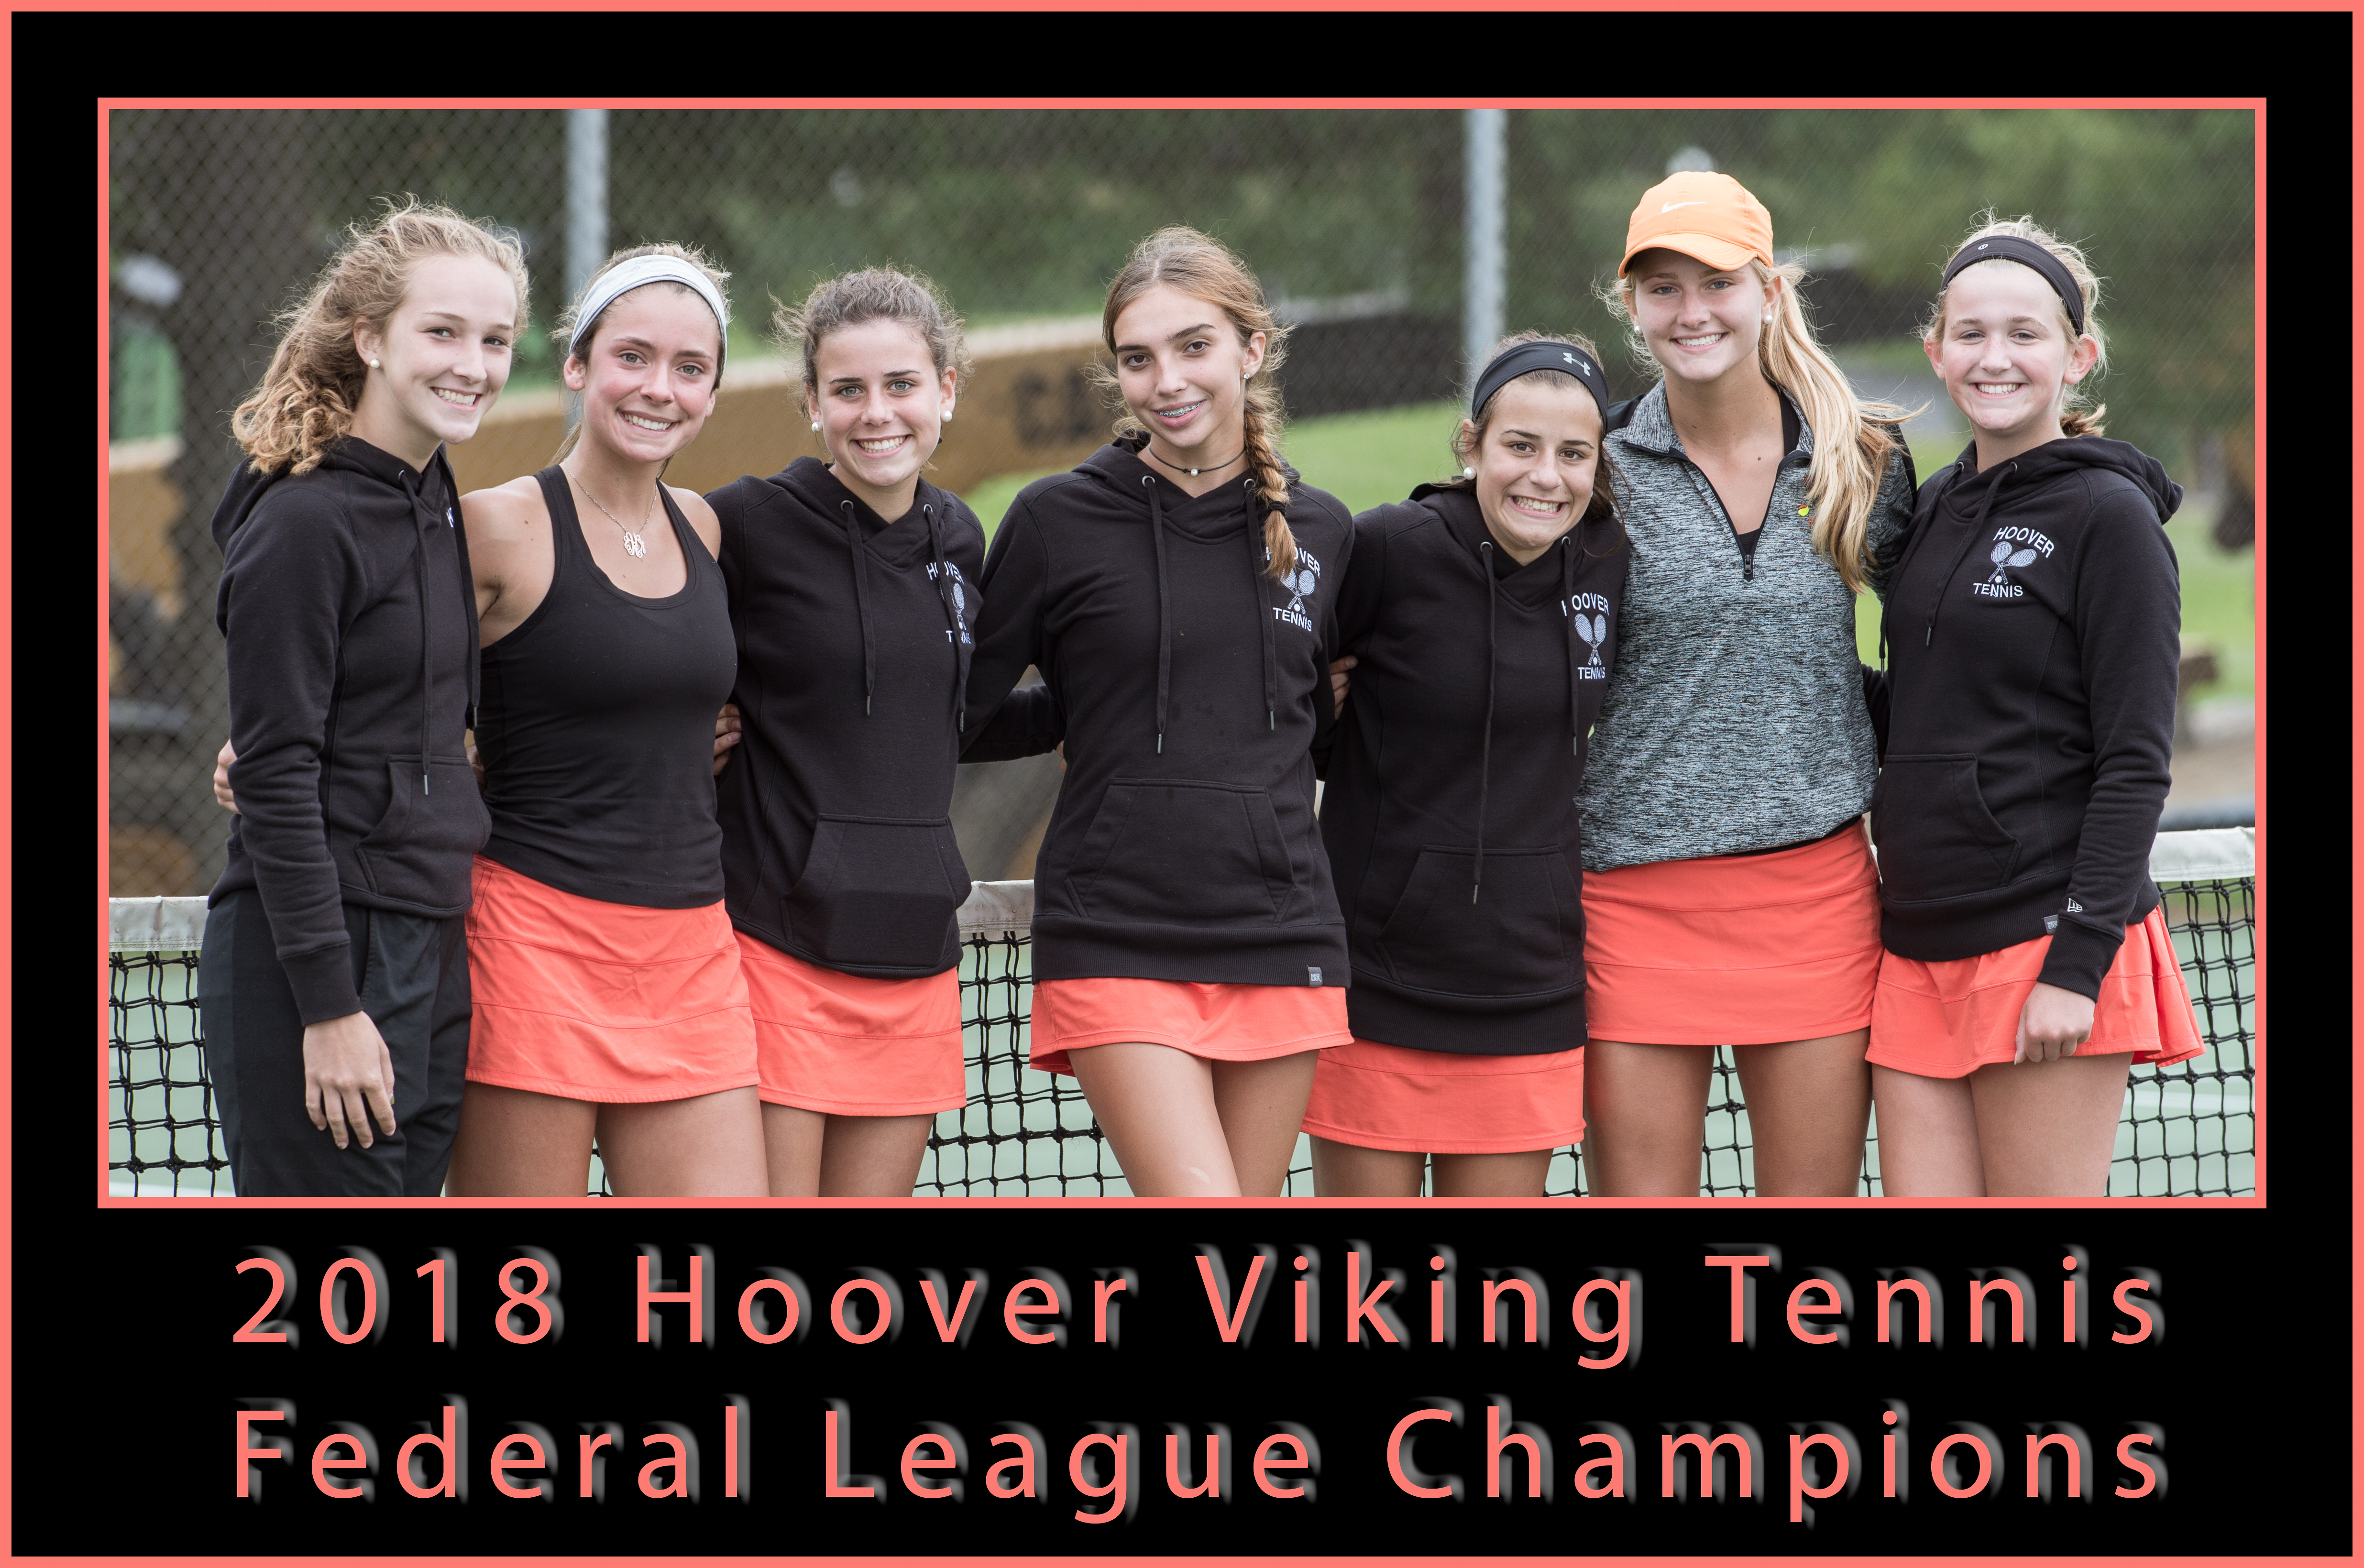 Hoover Girls Tennis Federal League Champs!